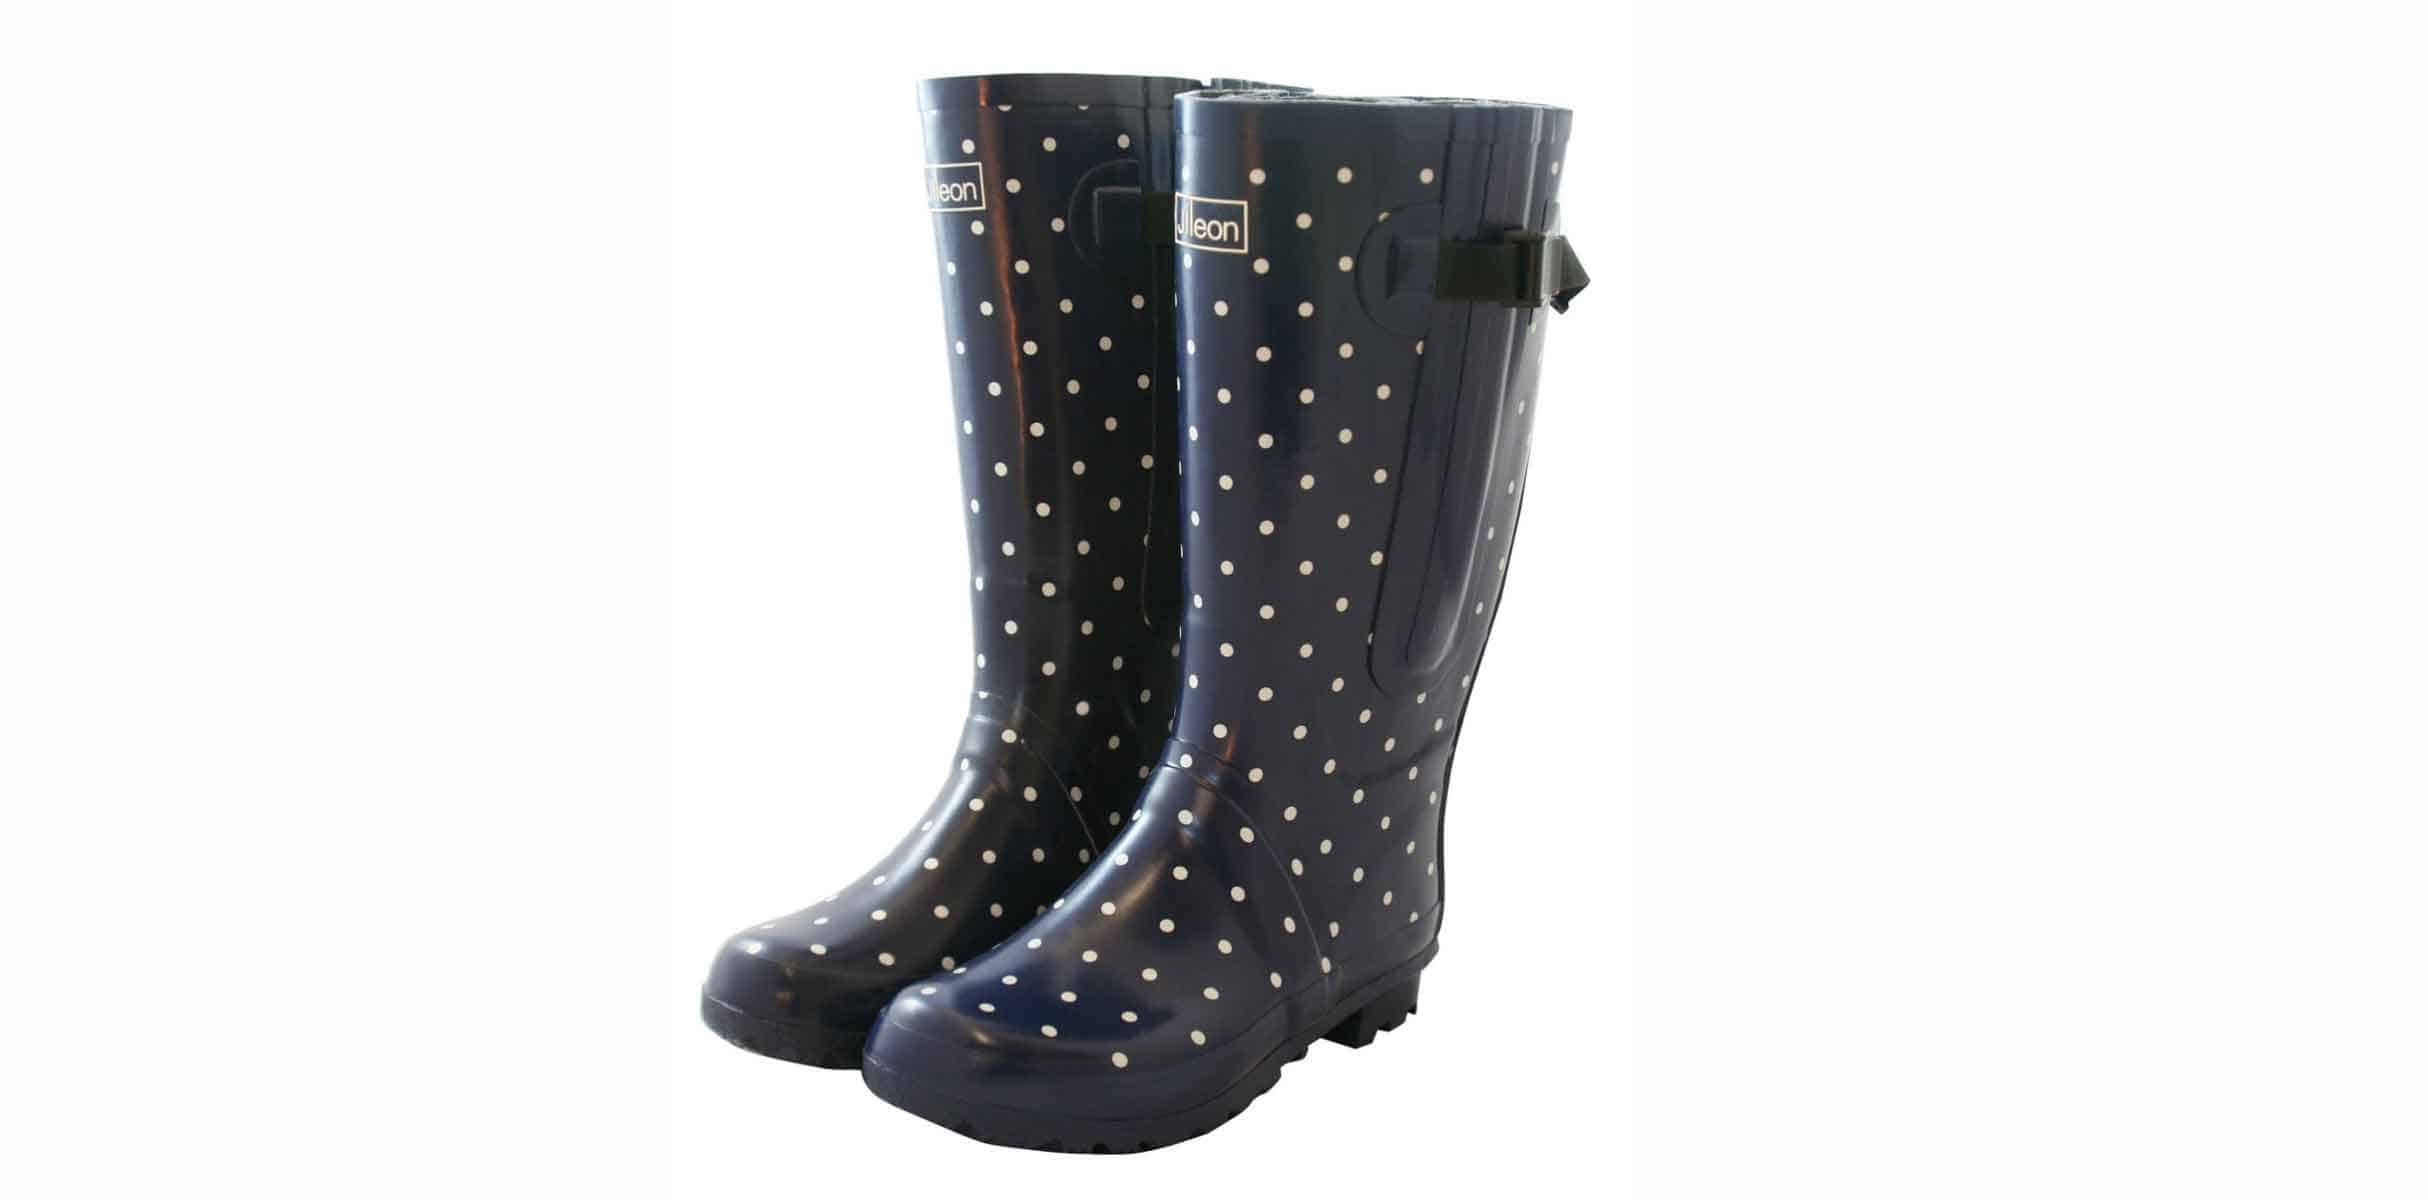 6767da5ea72 Wide Calf Wellies and Wide Fit Wellies - Many Styles ⋆ Yorkshire ...